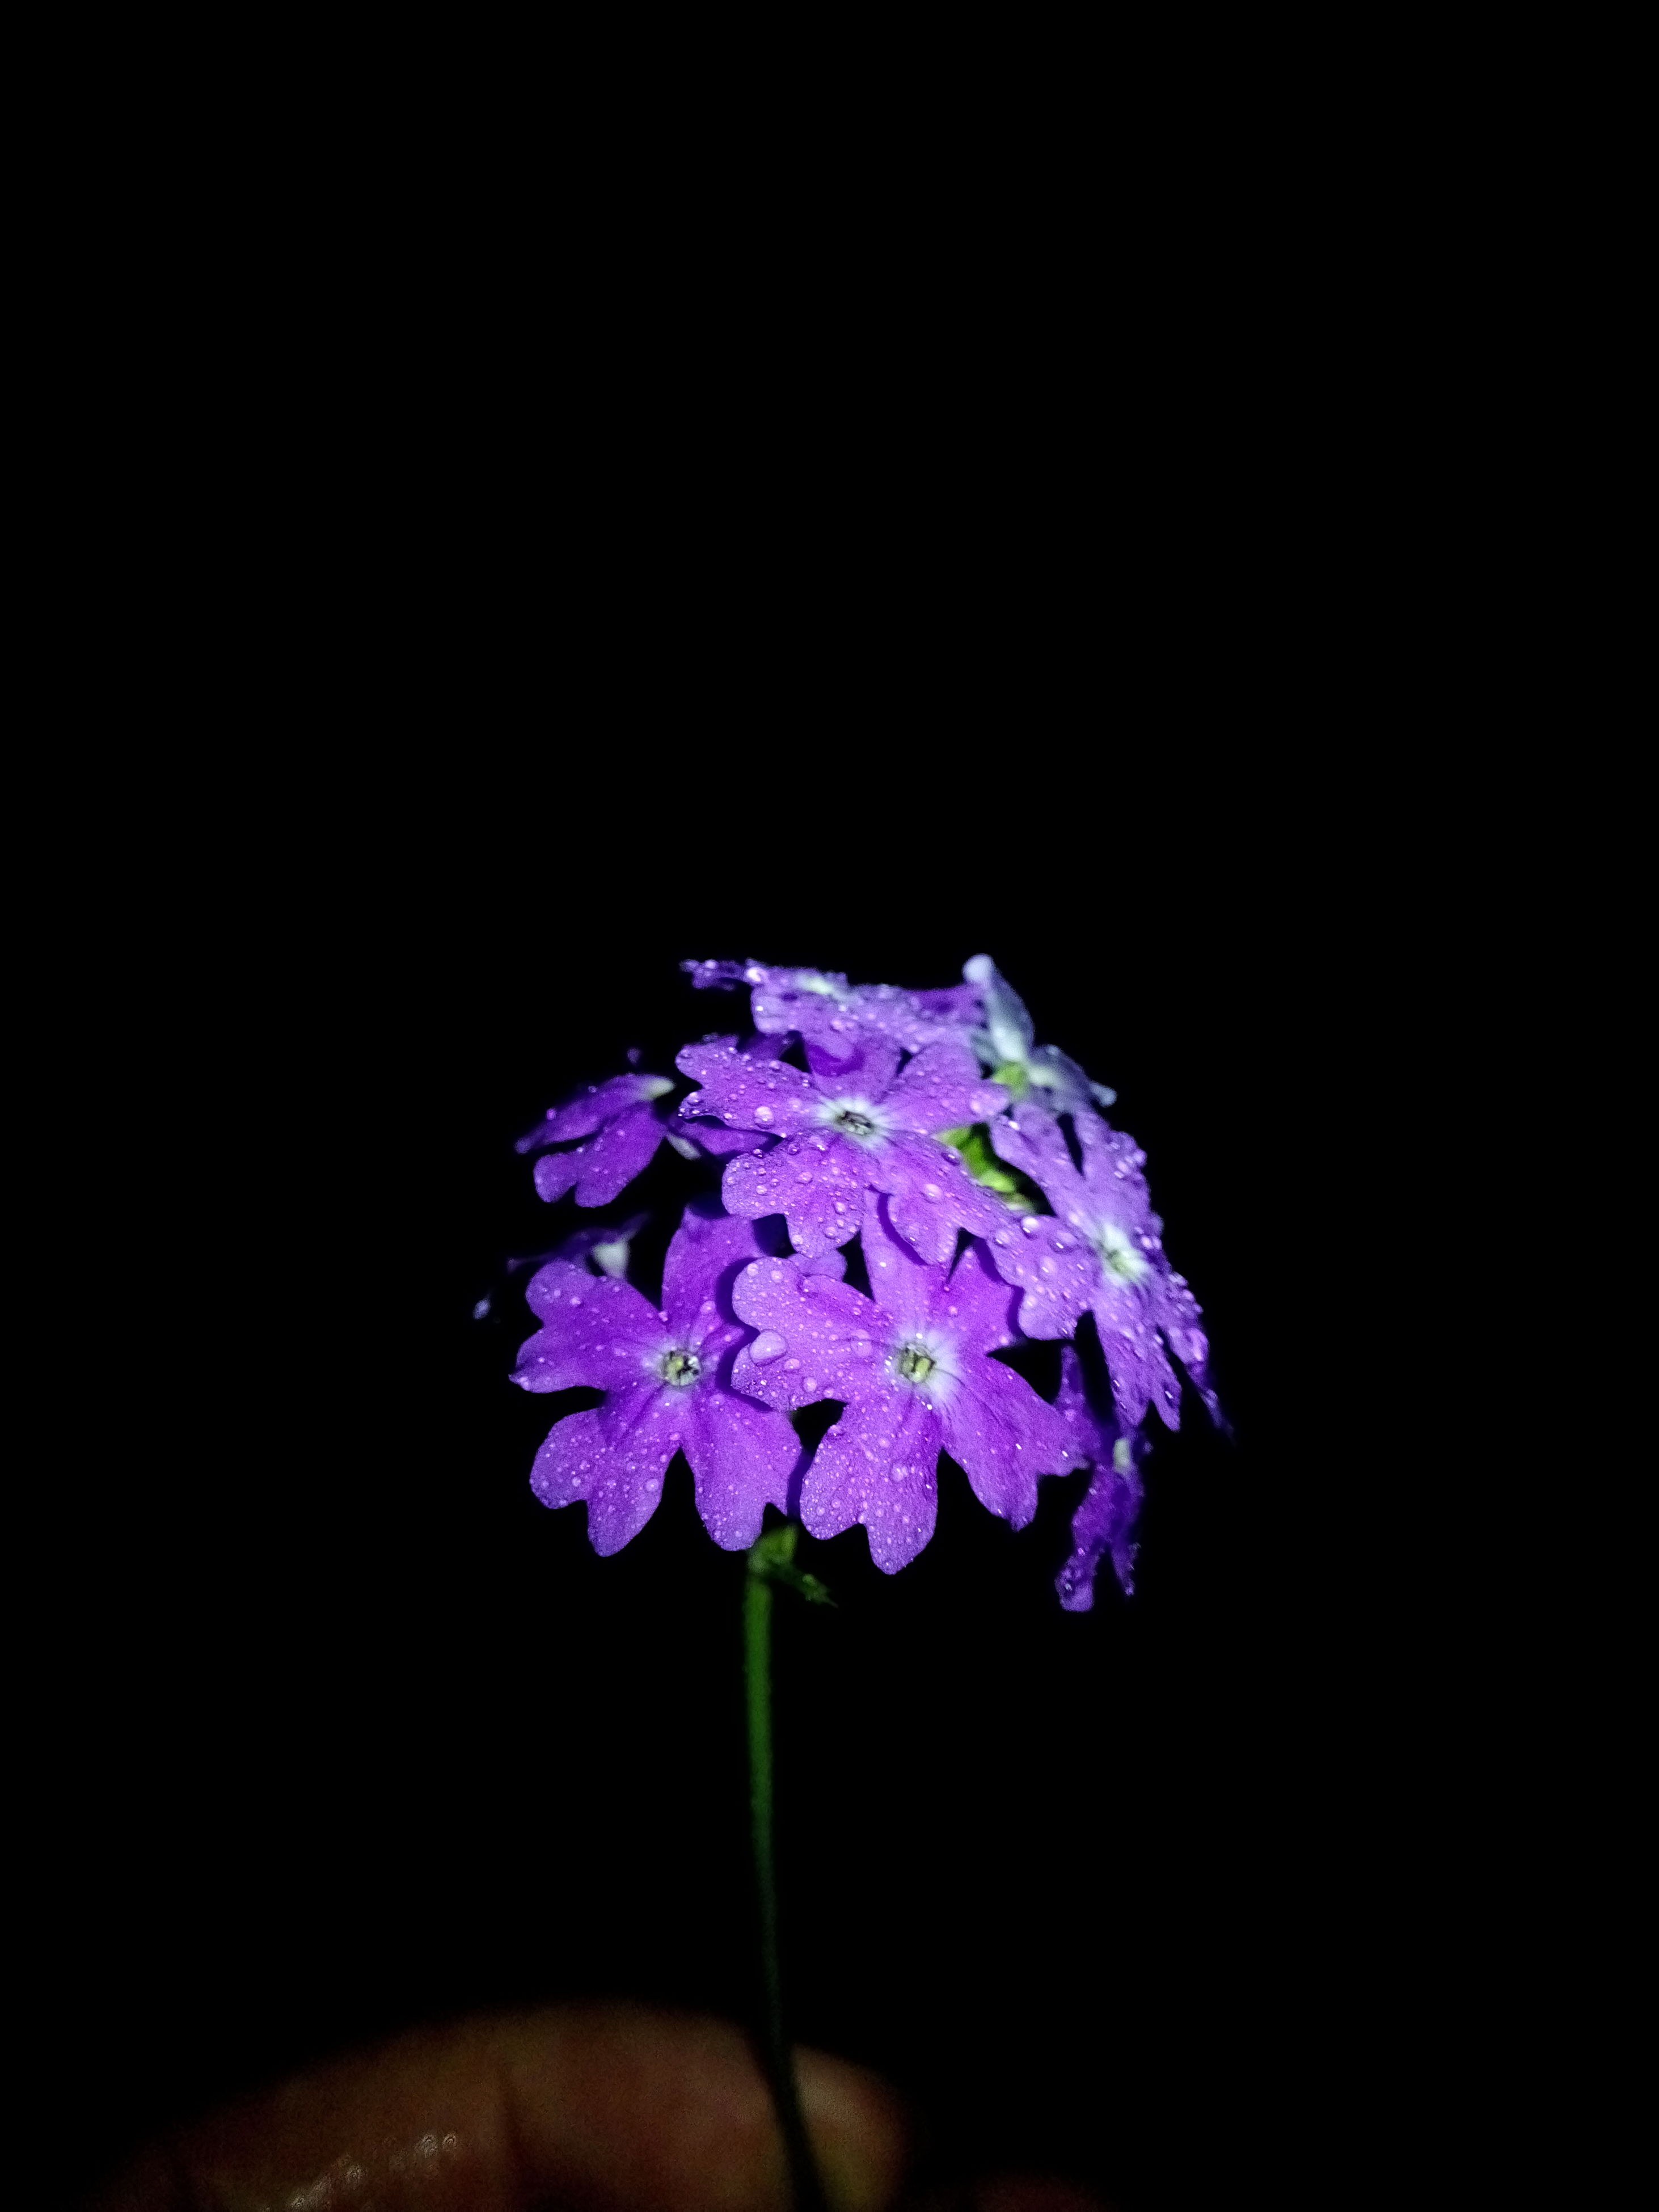 flower, purple, fragility, studio shot, freshness, petal, black background, copy space, beauty in nature, flower head, night, close-up, growth, nature, blossom, in bloom, no people, plant, blooming, bunch of flowers